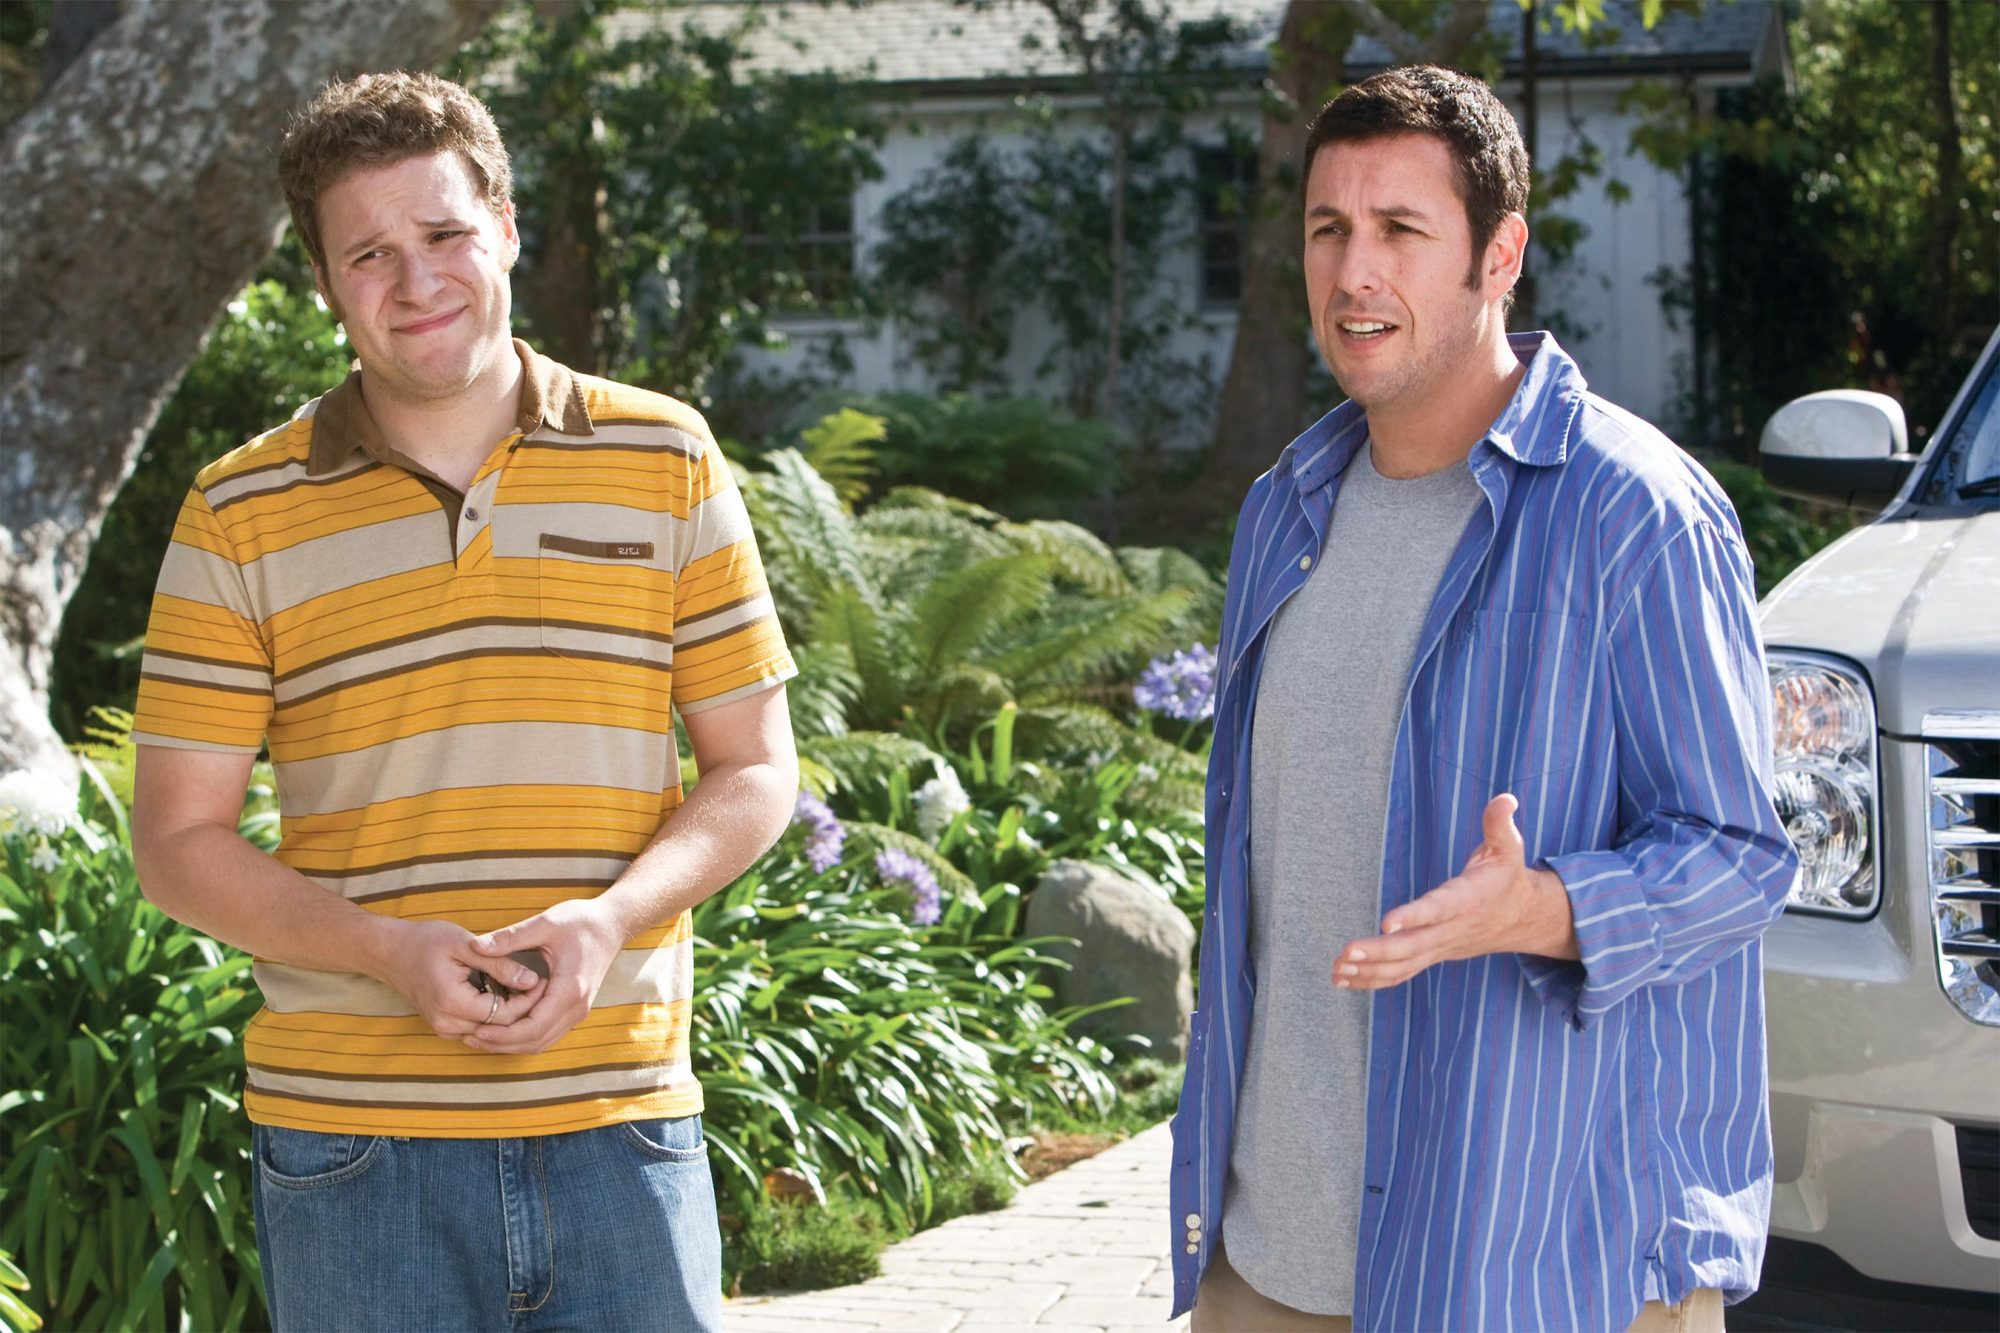 9. Seth Rogen and Adam Sandler in Funny People (2009)